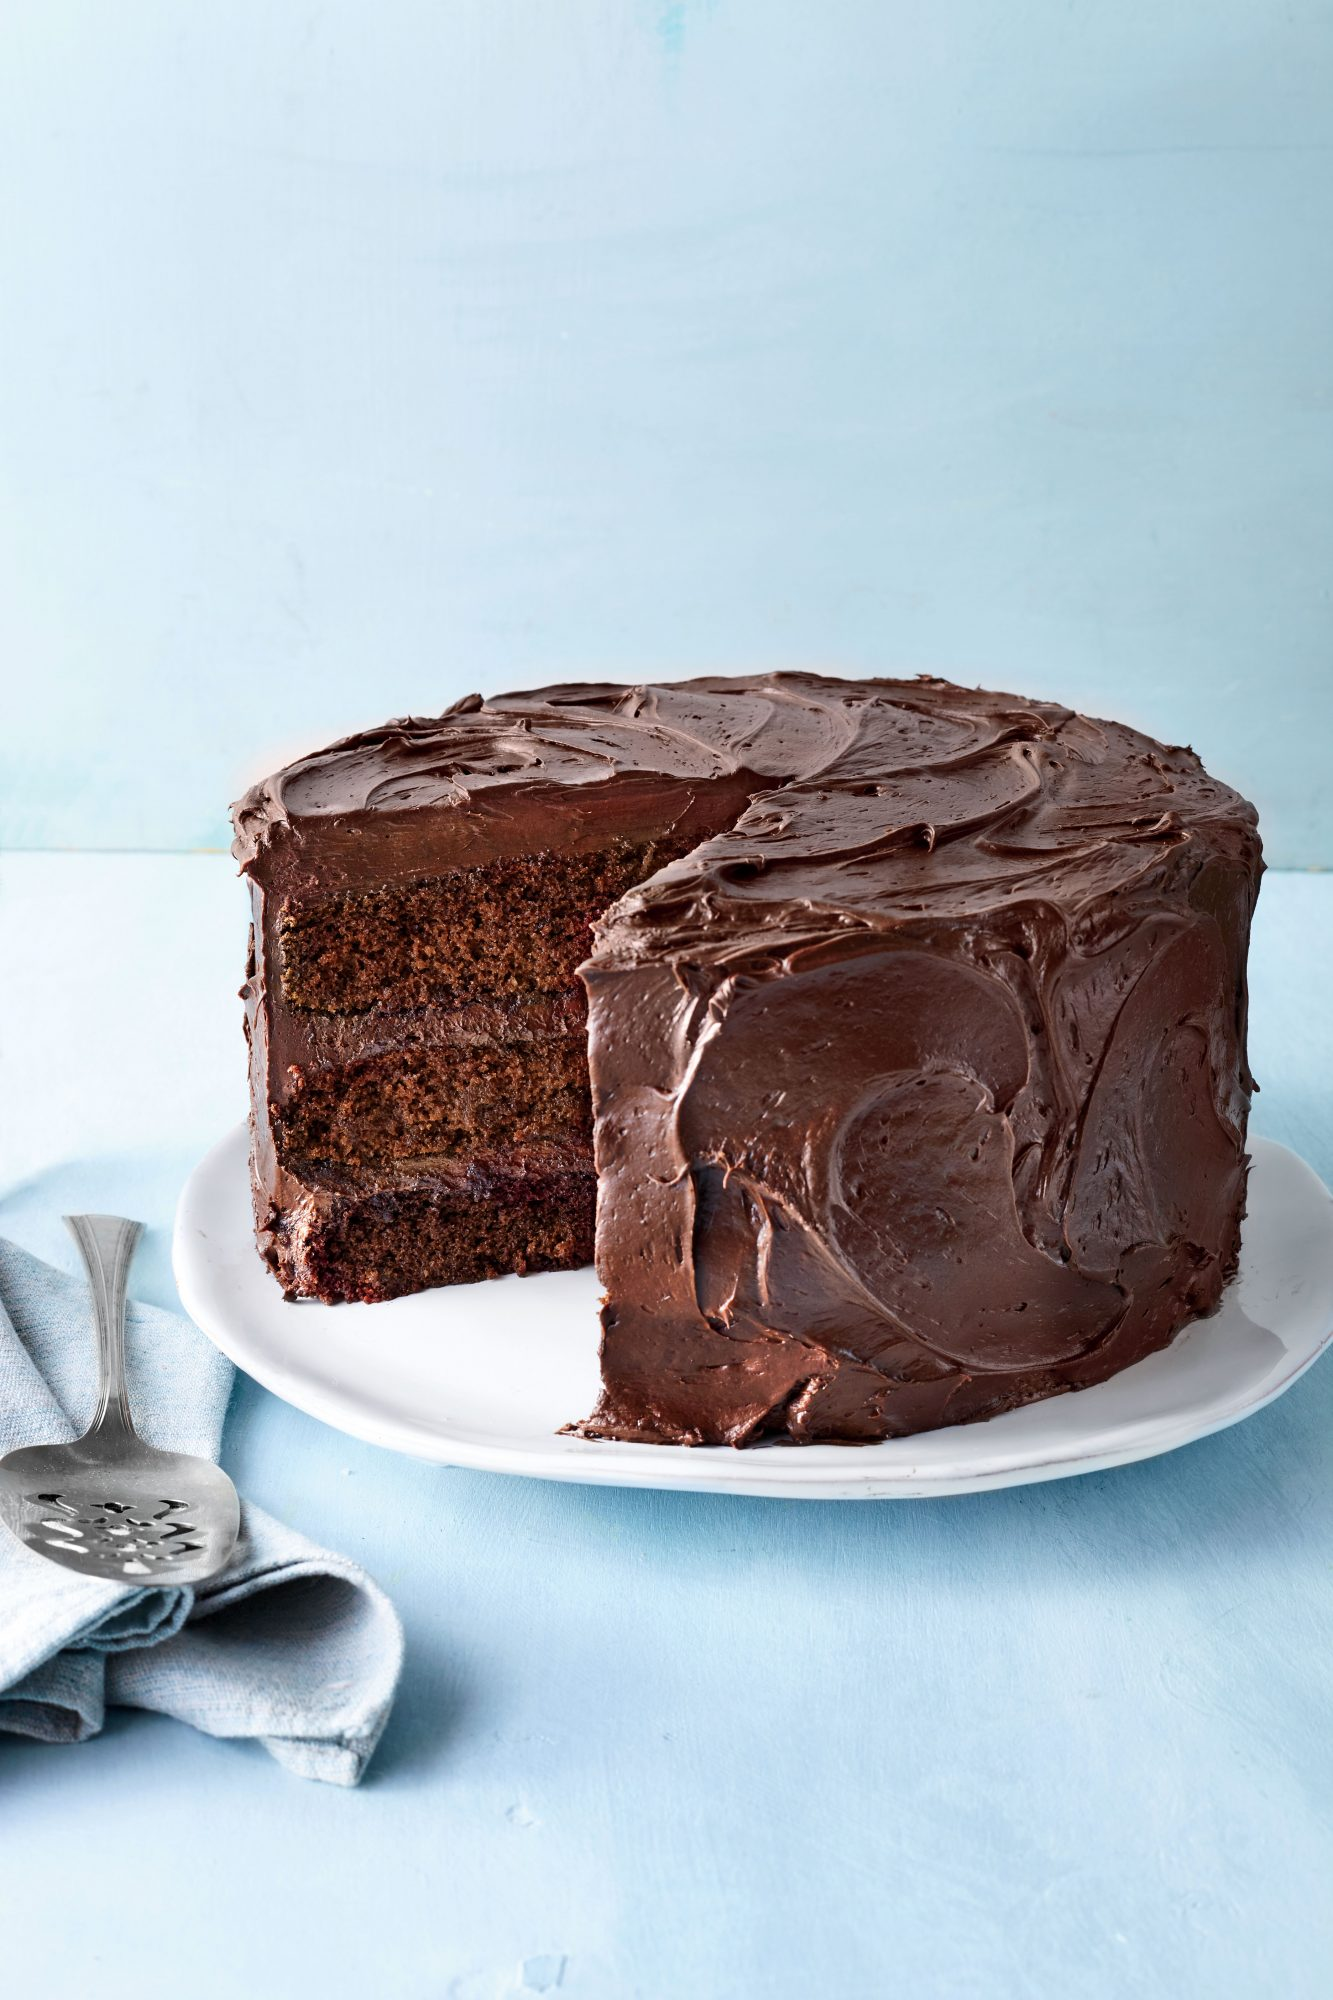 Southerners Know This is The Secret Ingredient for Amazing Chocolate Cake